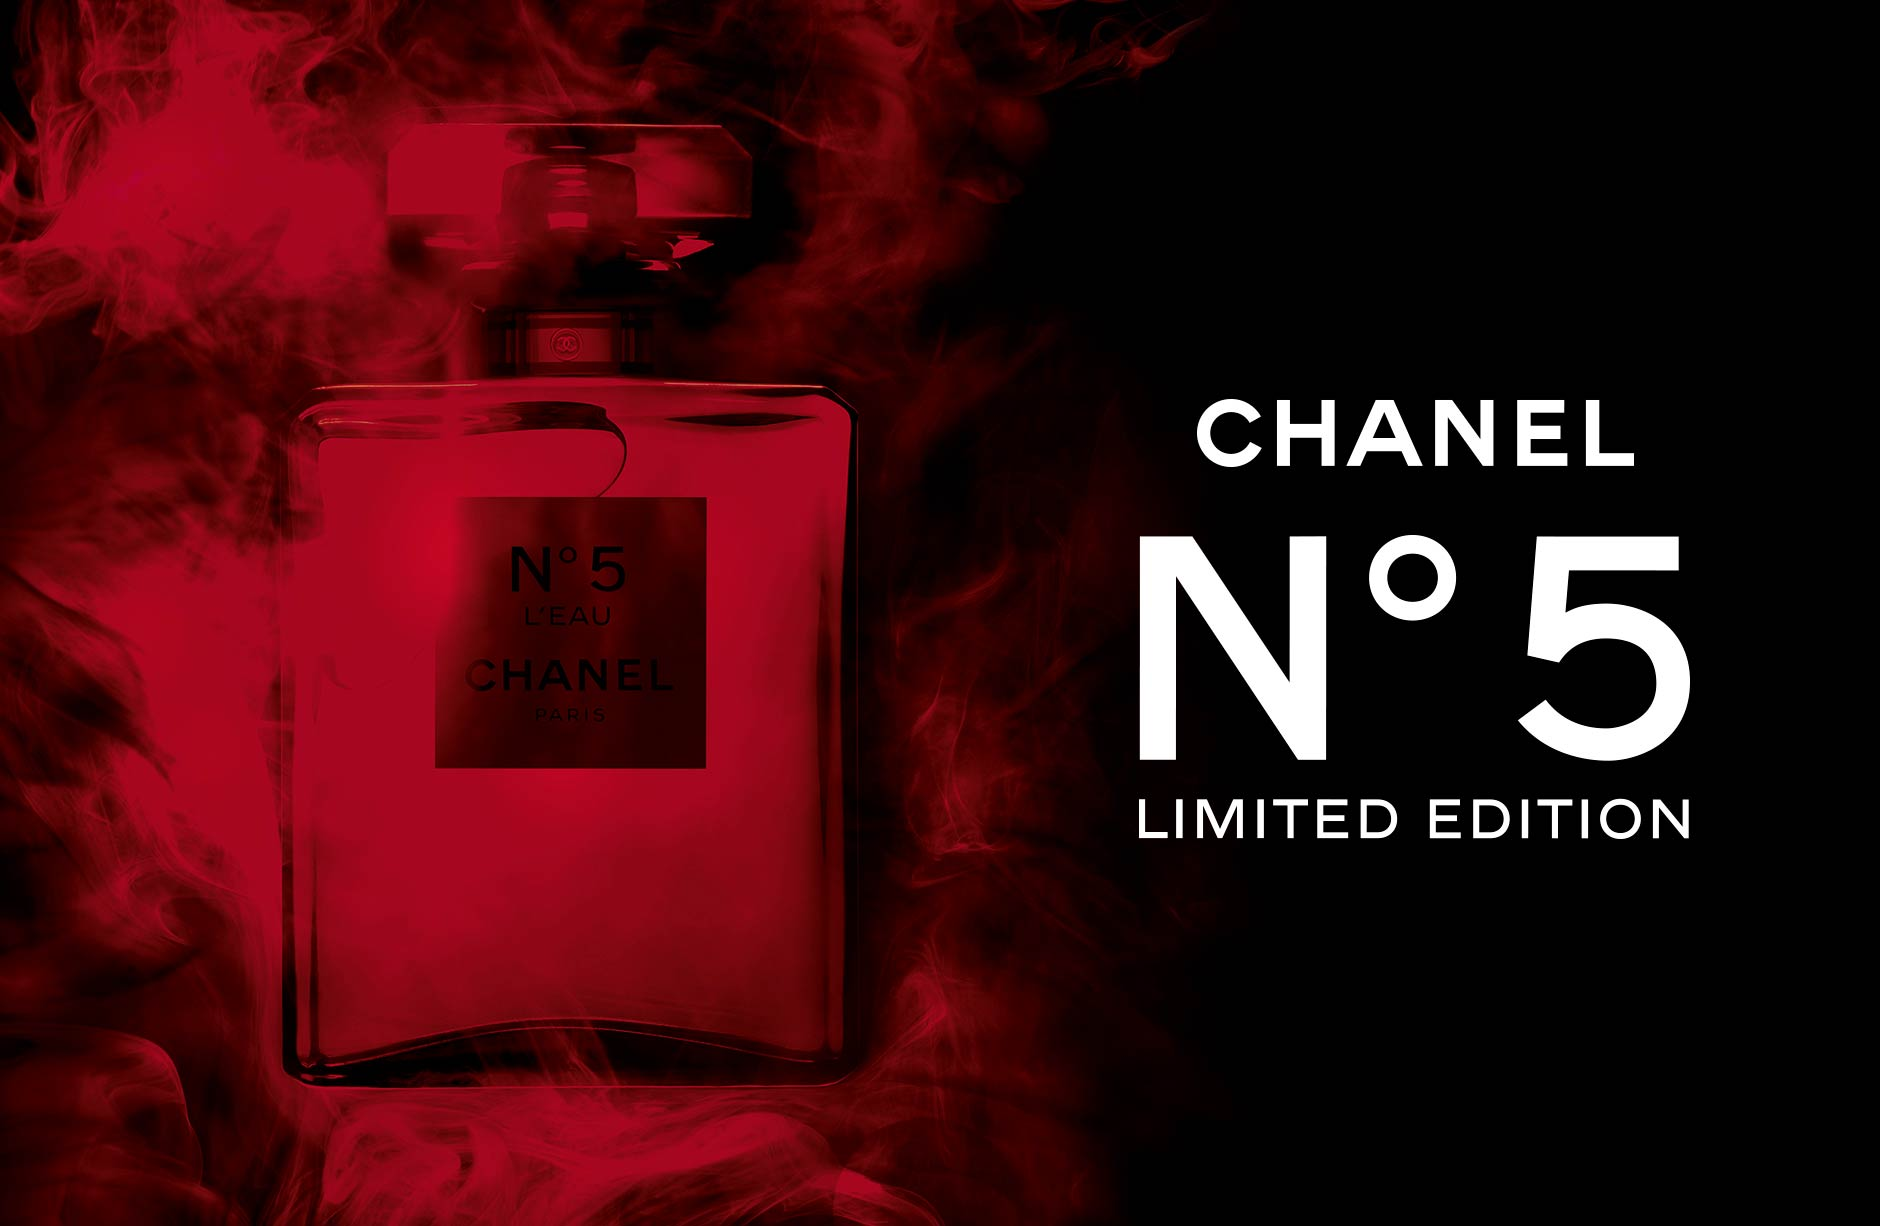 Chanel N5 - Limited Edition